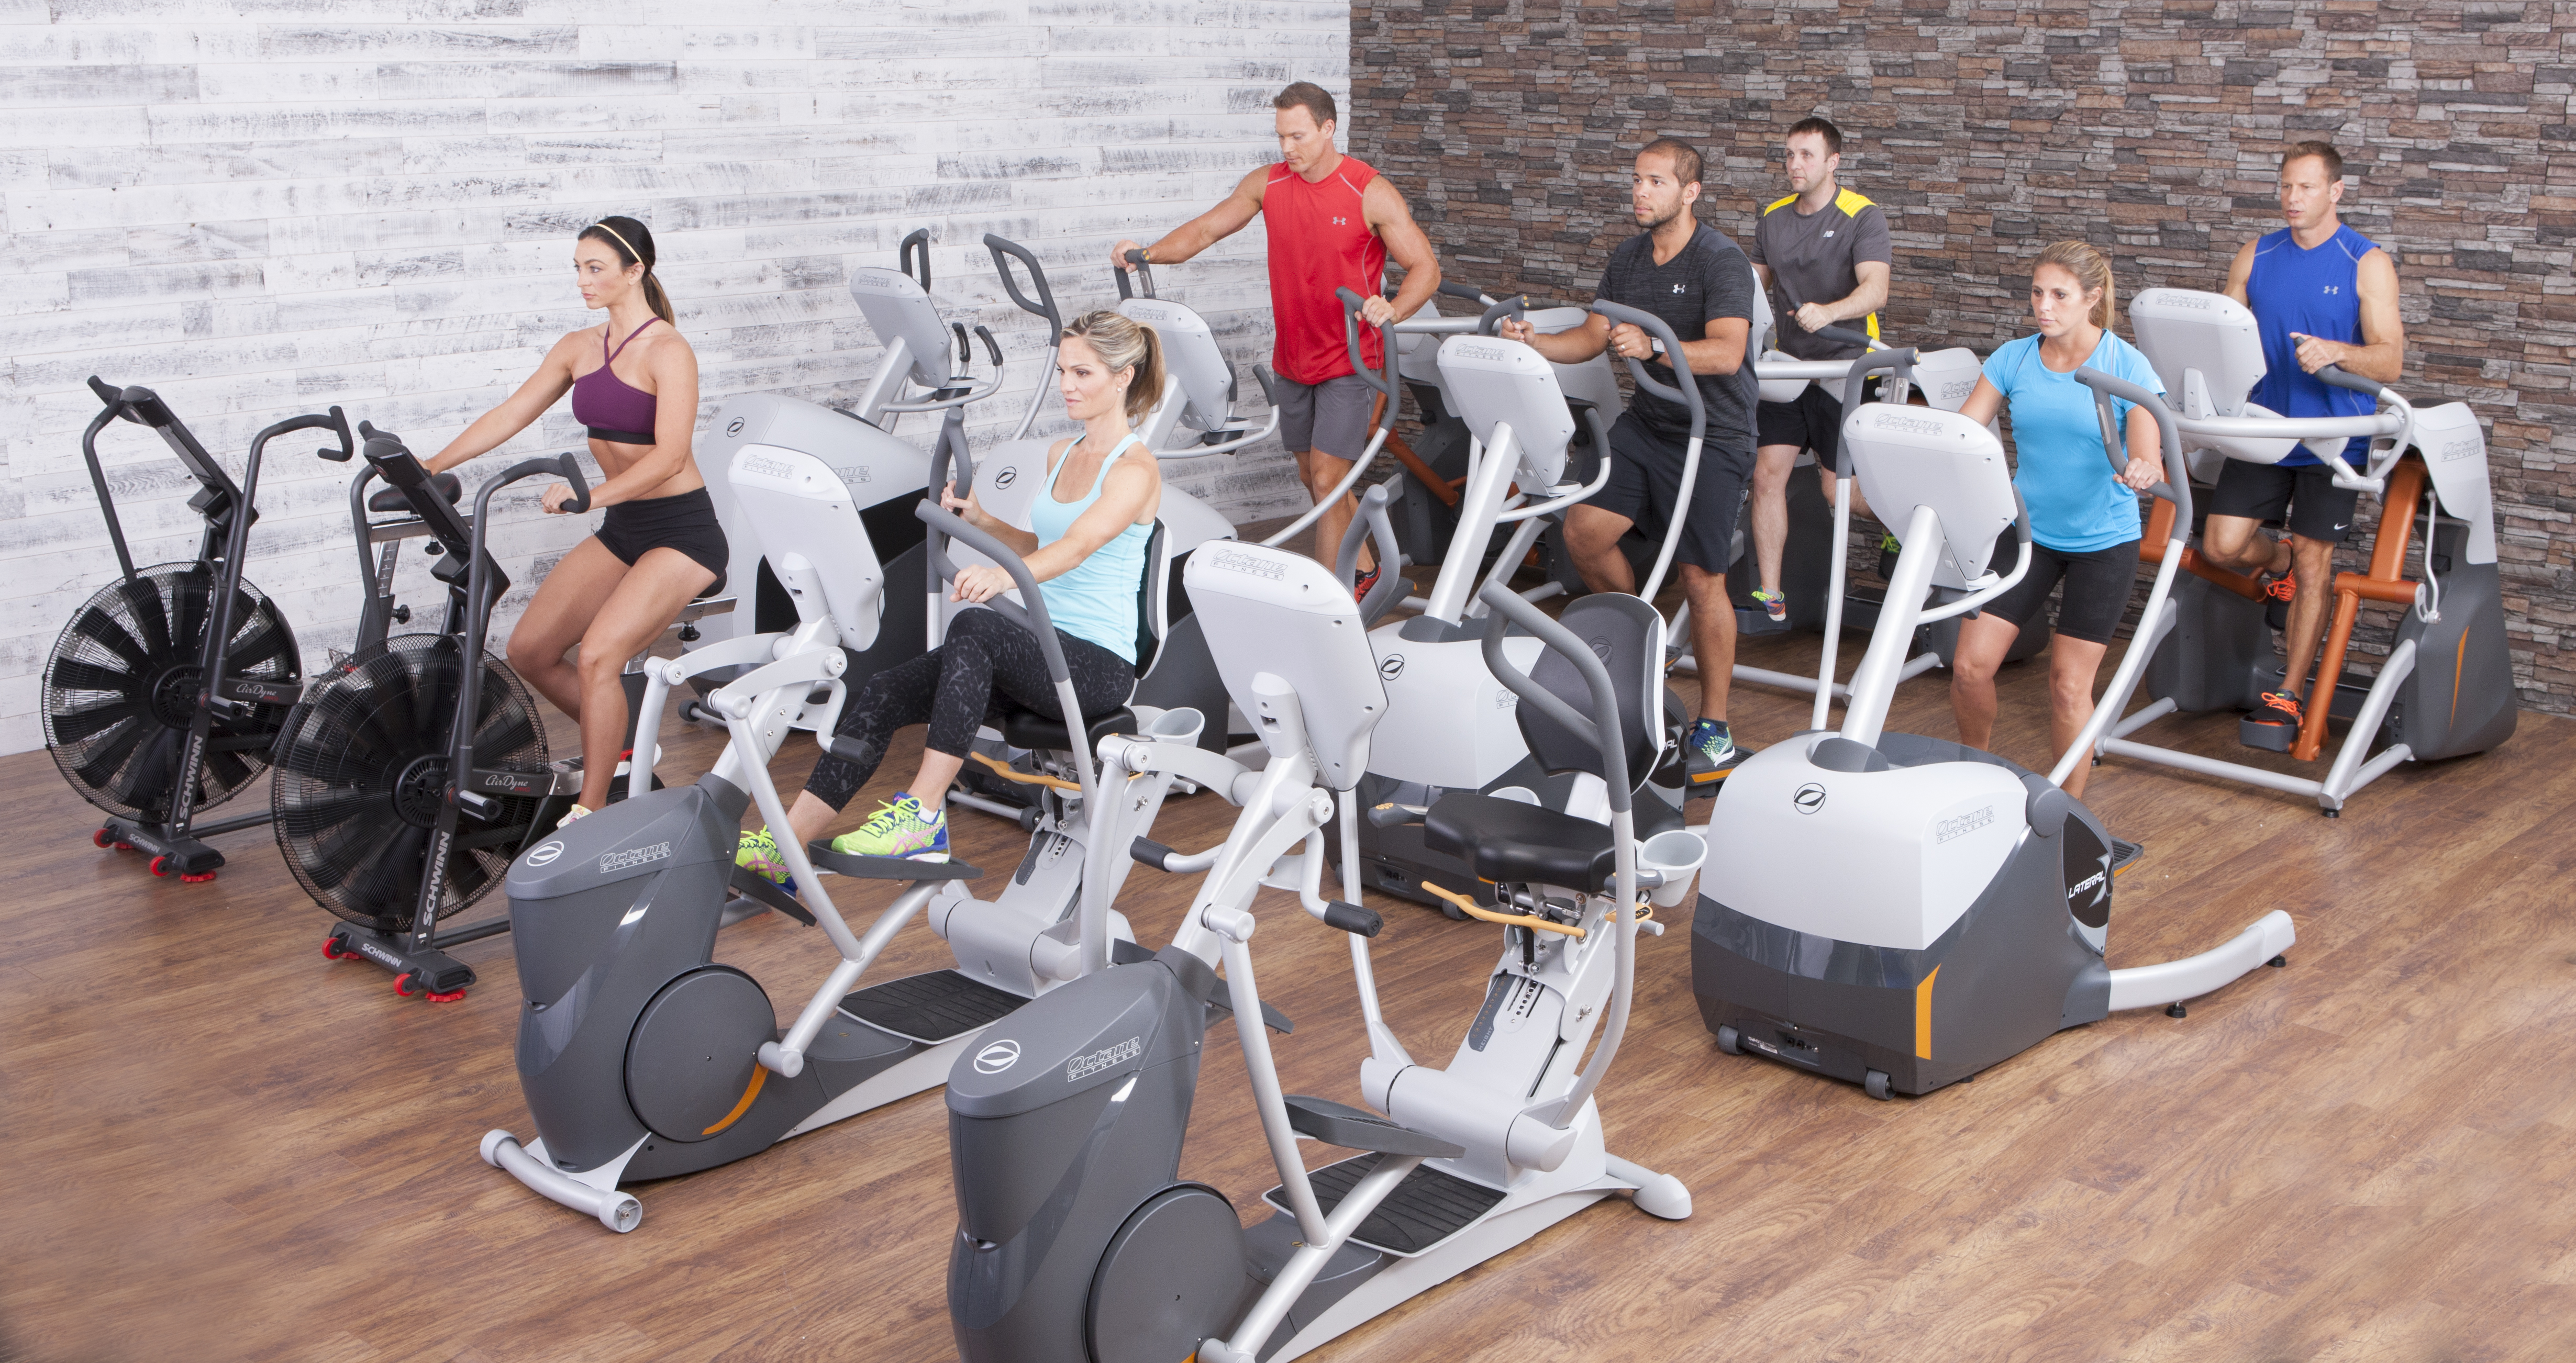 an analysis of the benefits and excercise equipment of cardiovascular fitness Included gerkin protocol test to calculate cardiovascular health spirit fitness what are some benefits from using cardio exercise equipment analysis has.